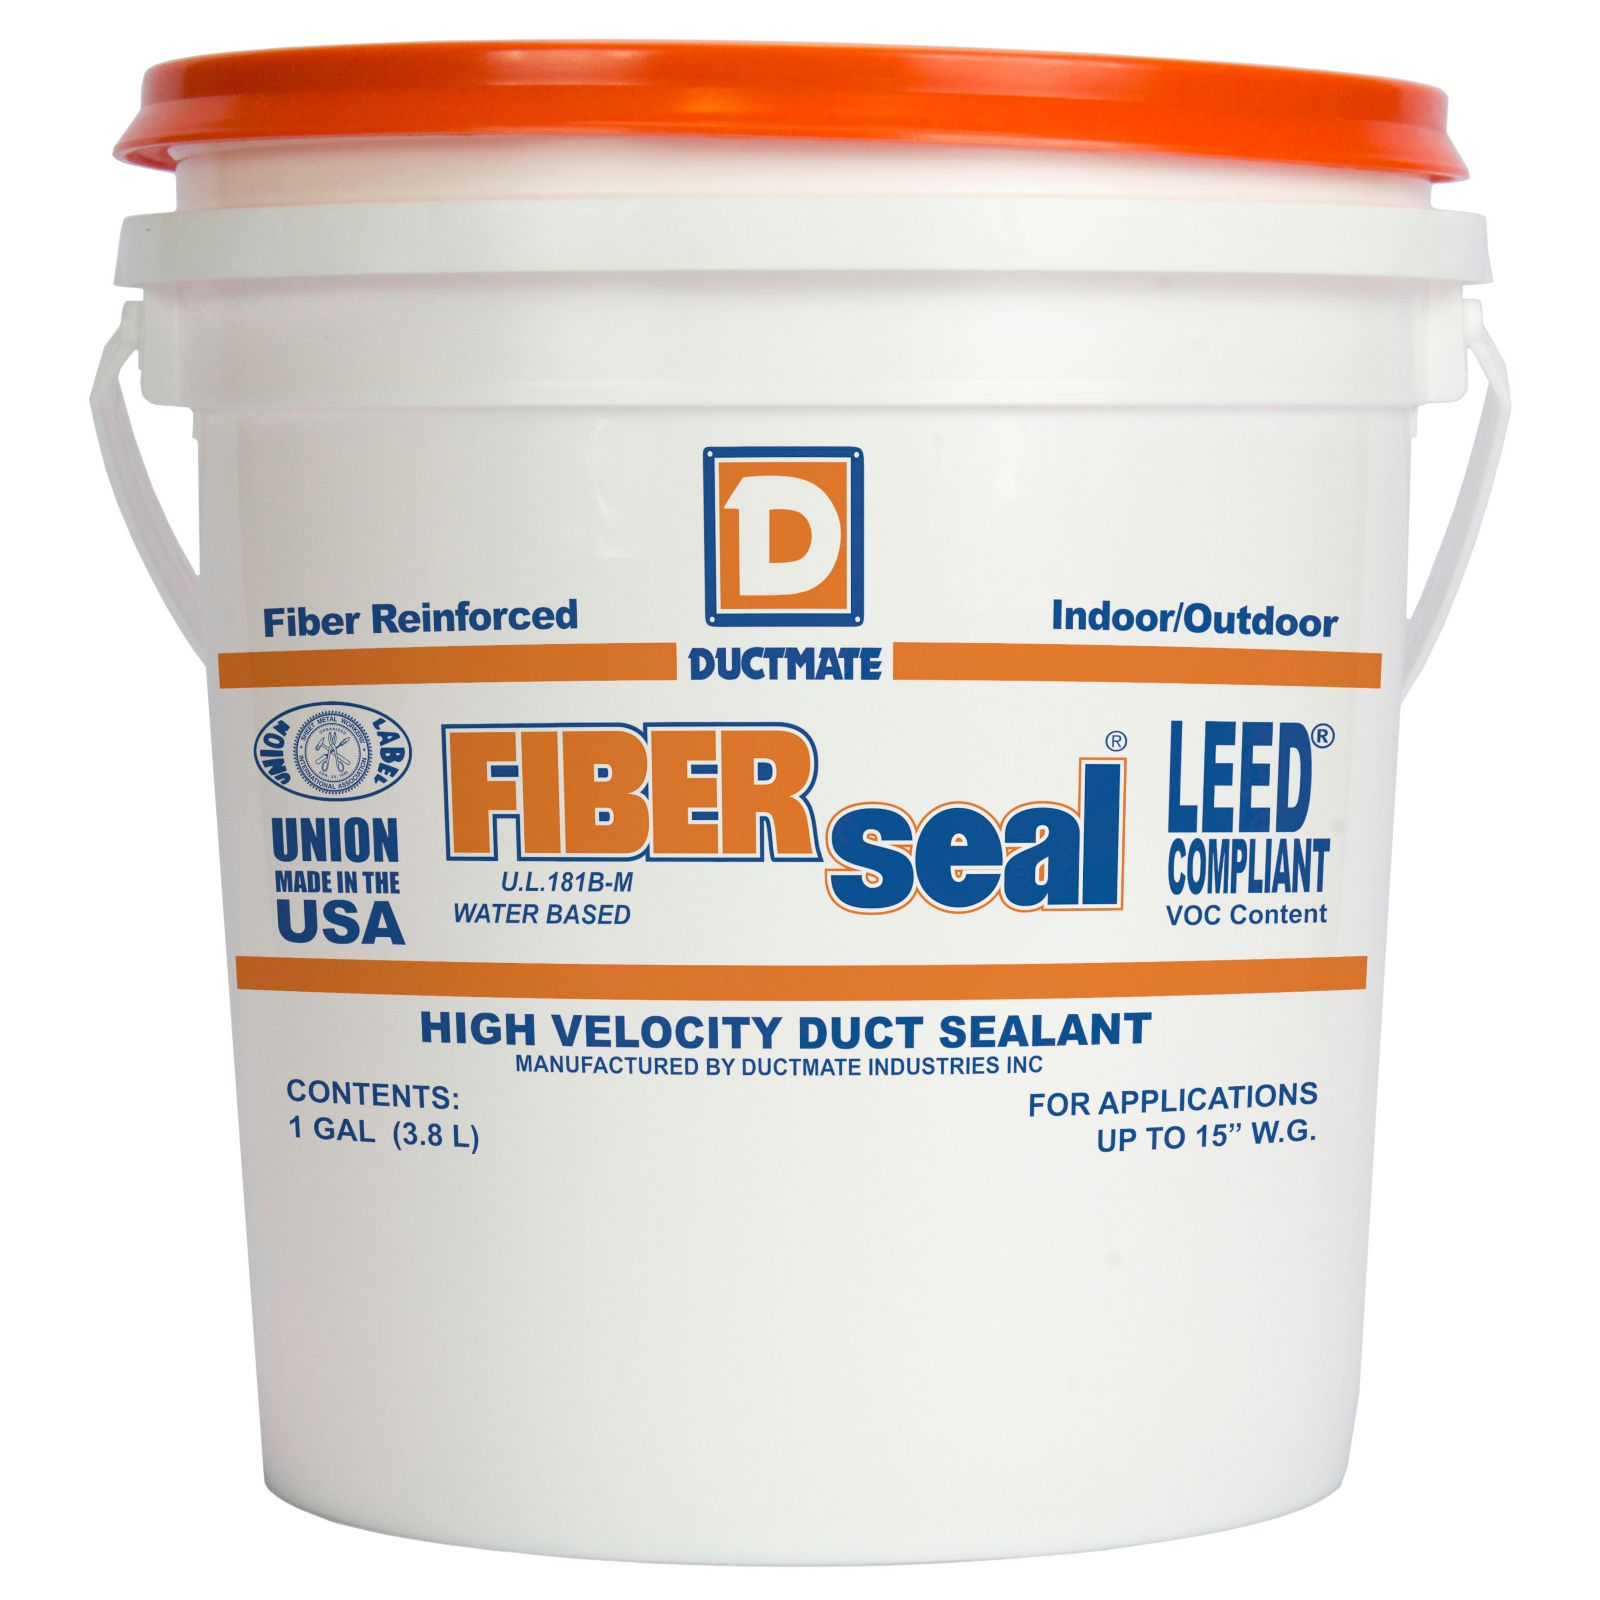 Ductmate FIBERSEAL1 - Premium Water Based High-Velocity, Fiber Reinforced Duct Sealant - 1 Gallon